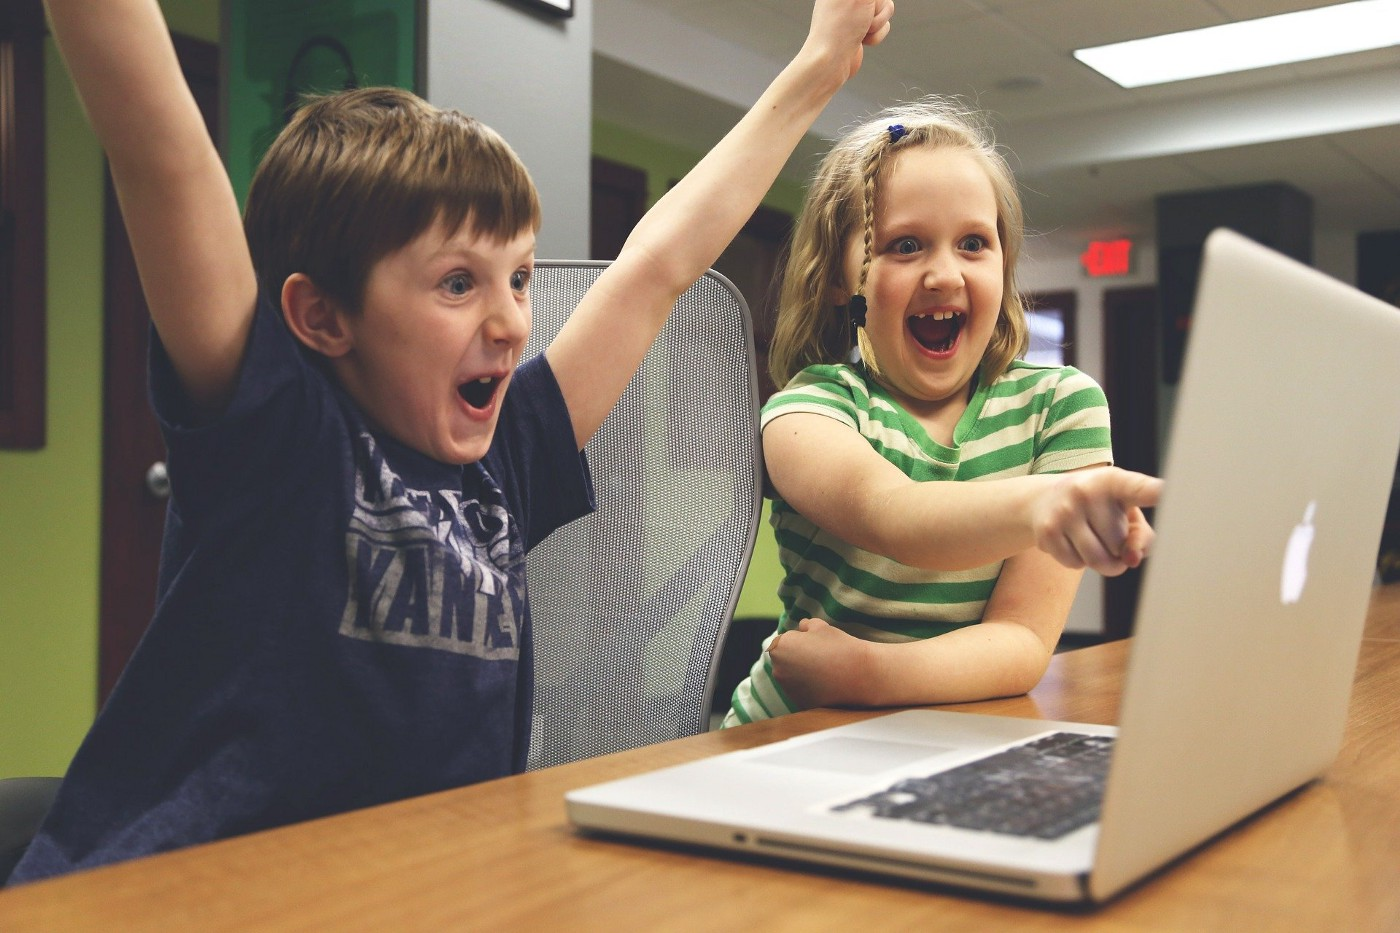 Children happy at looking at a screen